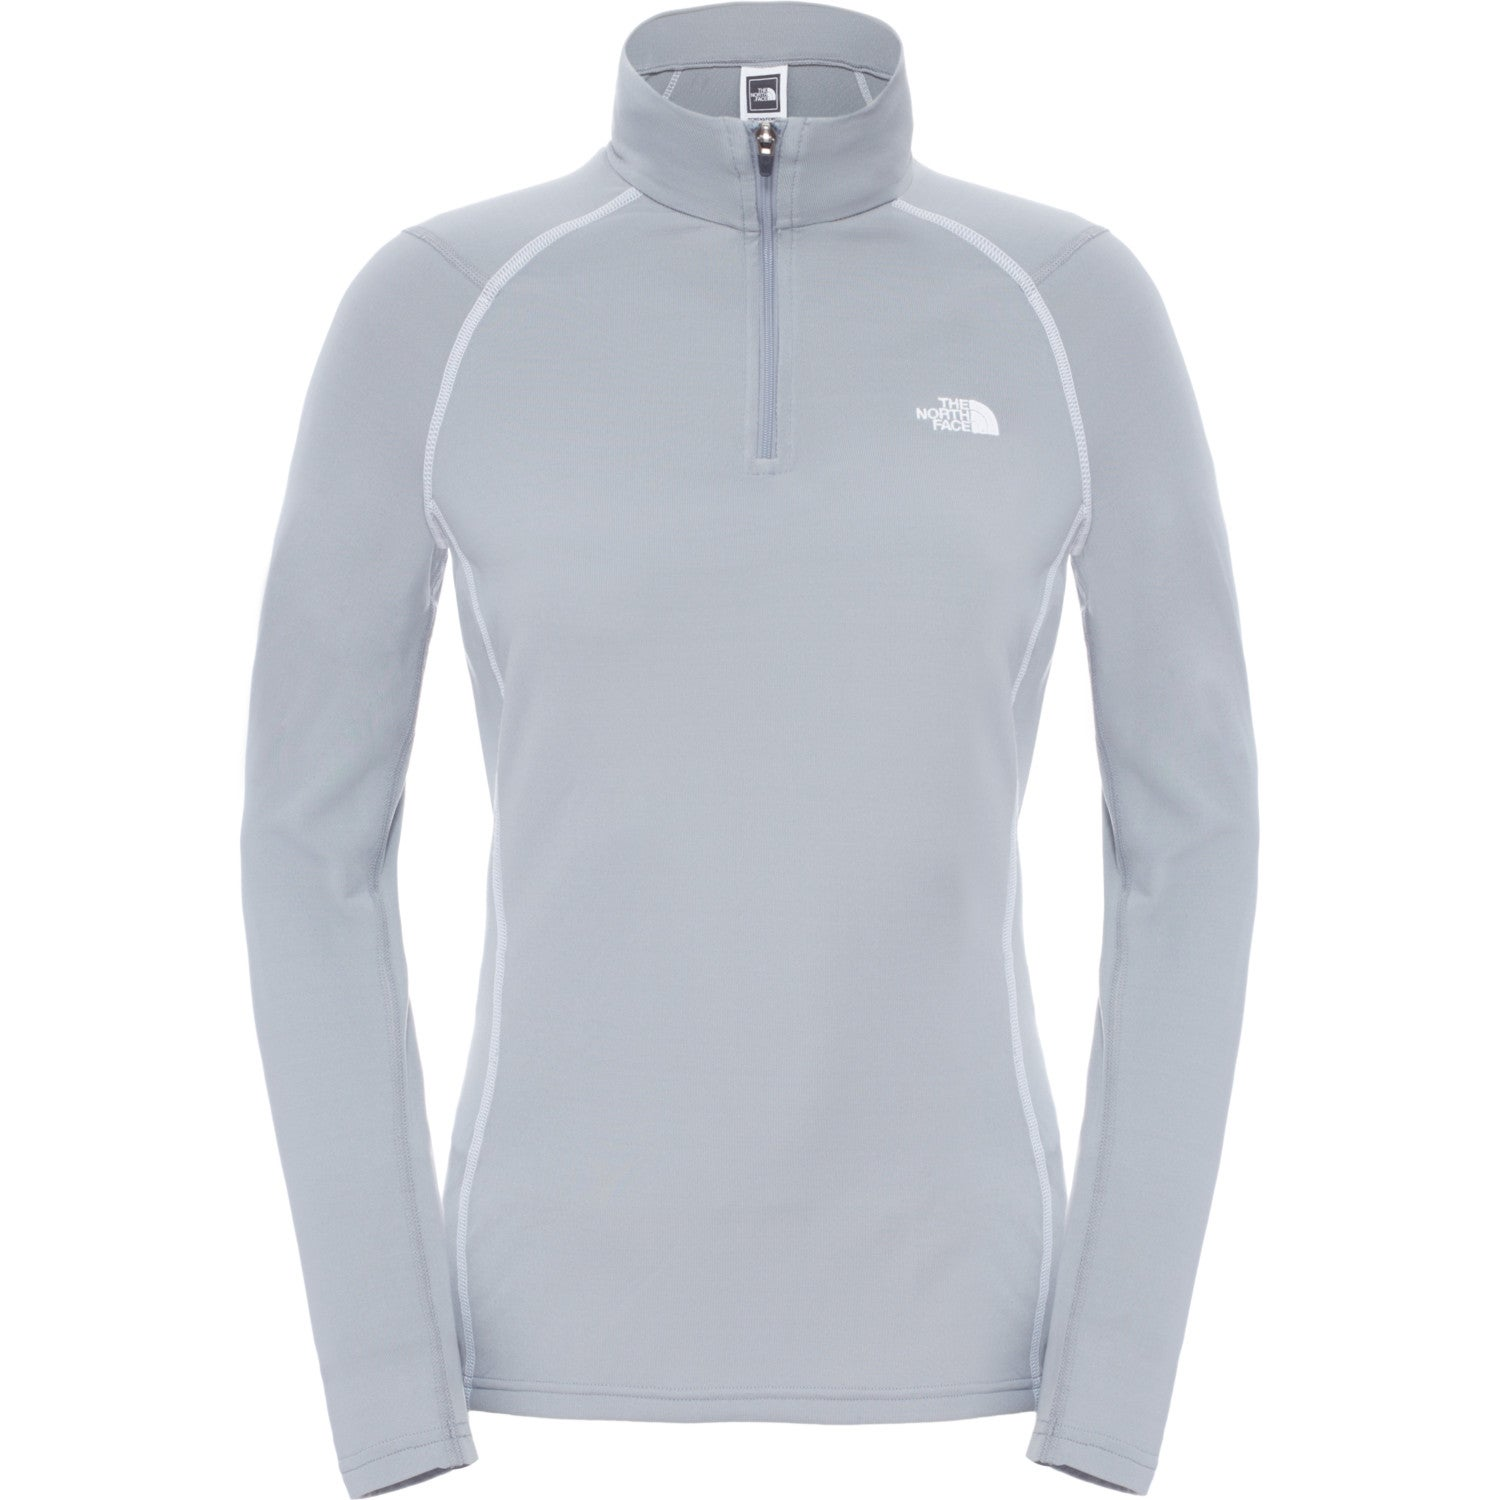 9a7d6337d North Face Warm L S Zip Neck Womens Baselayer